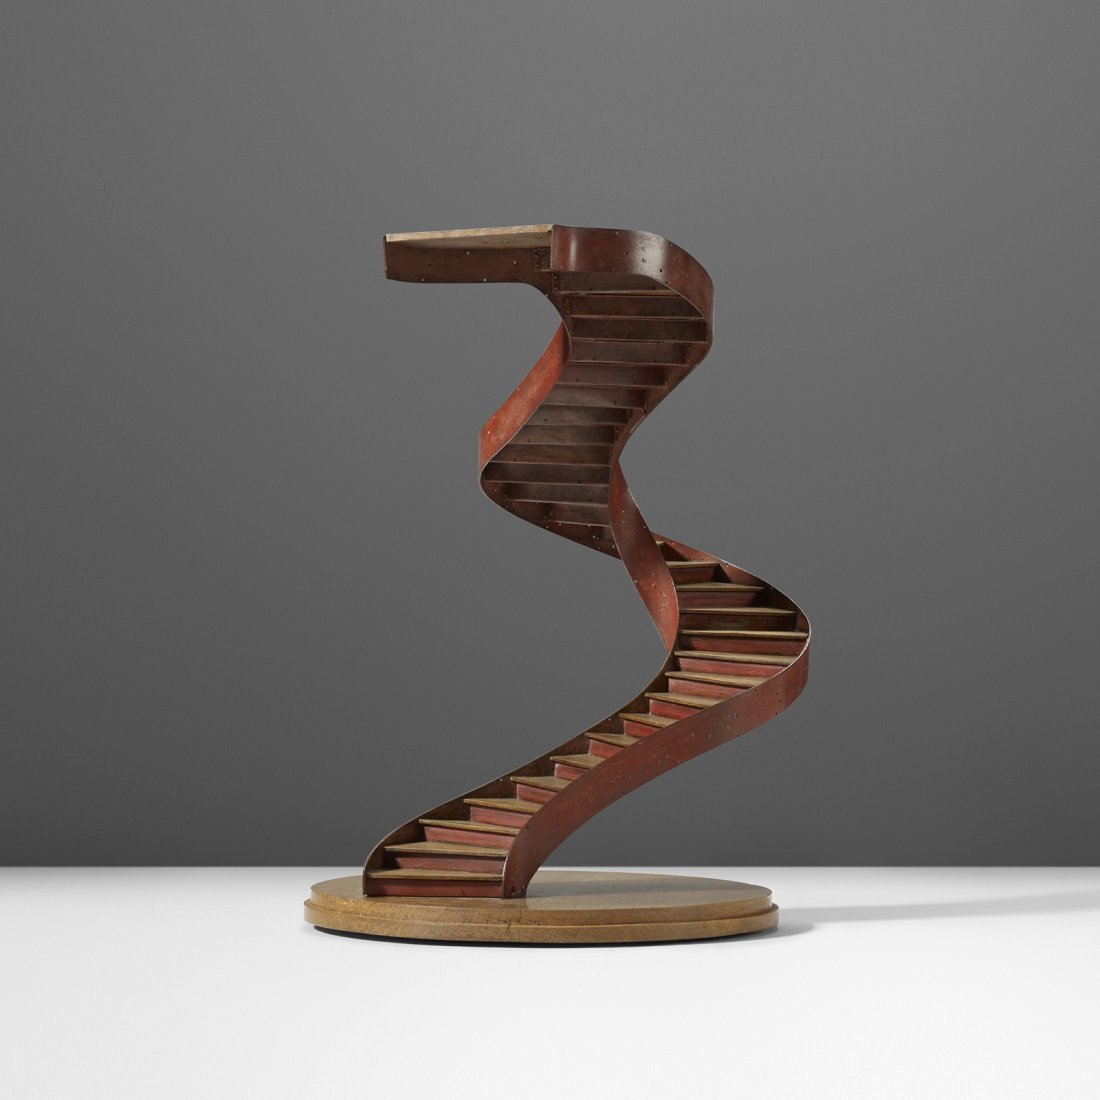 French staircase model